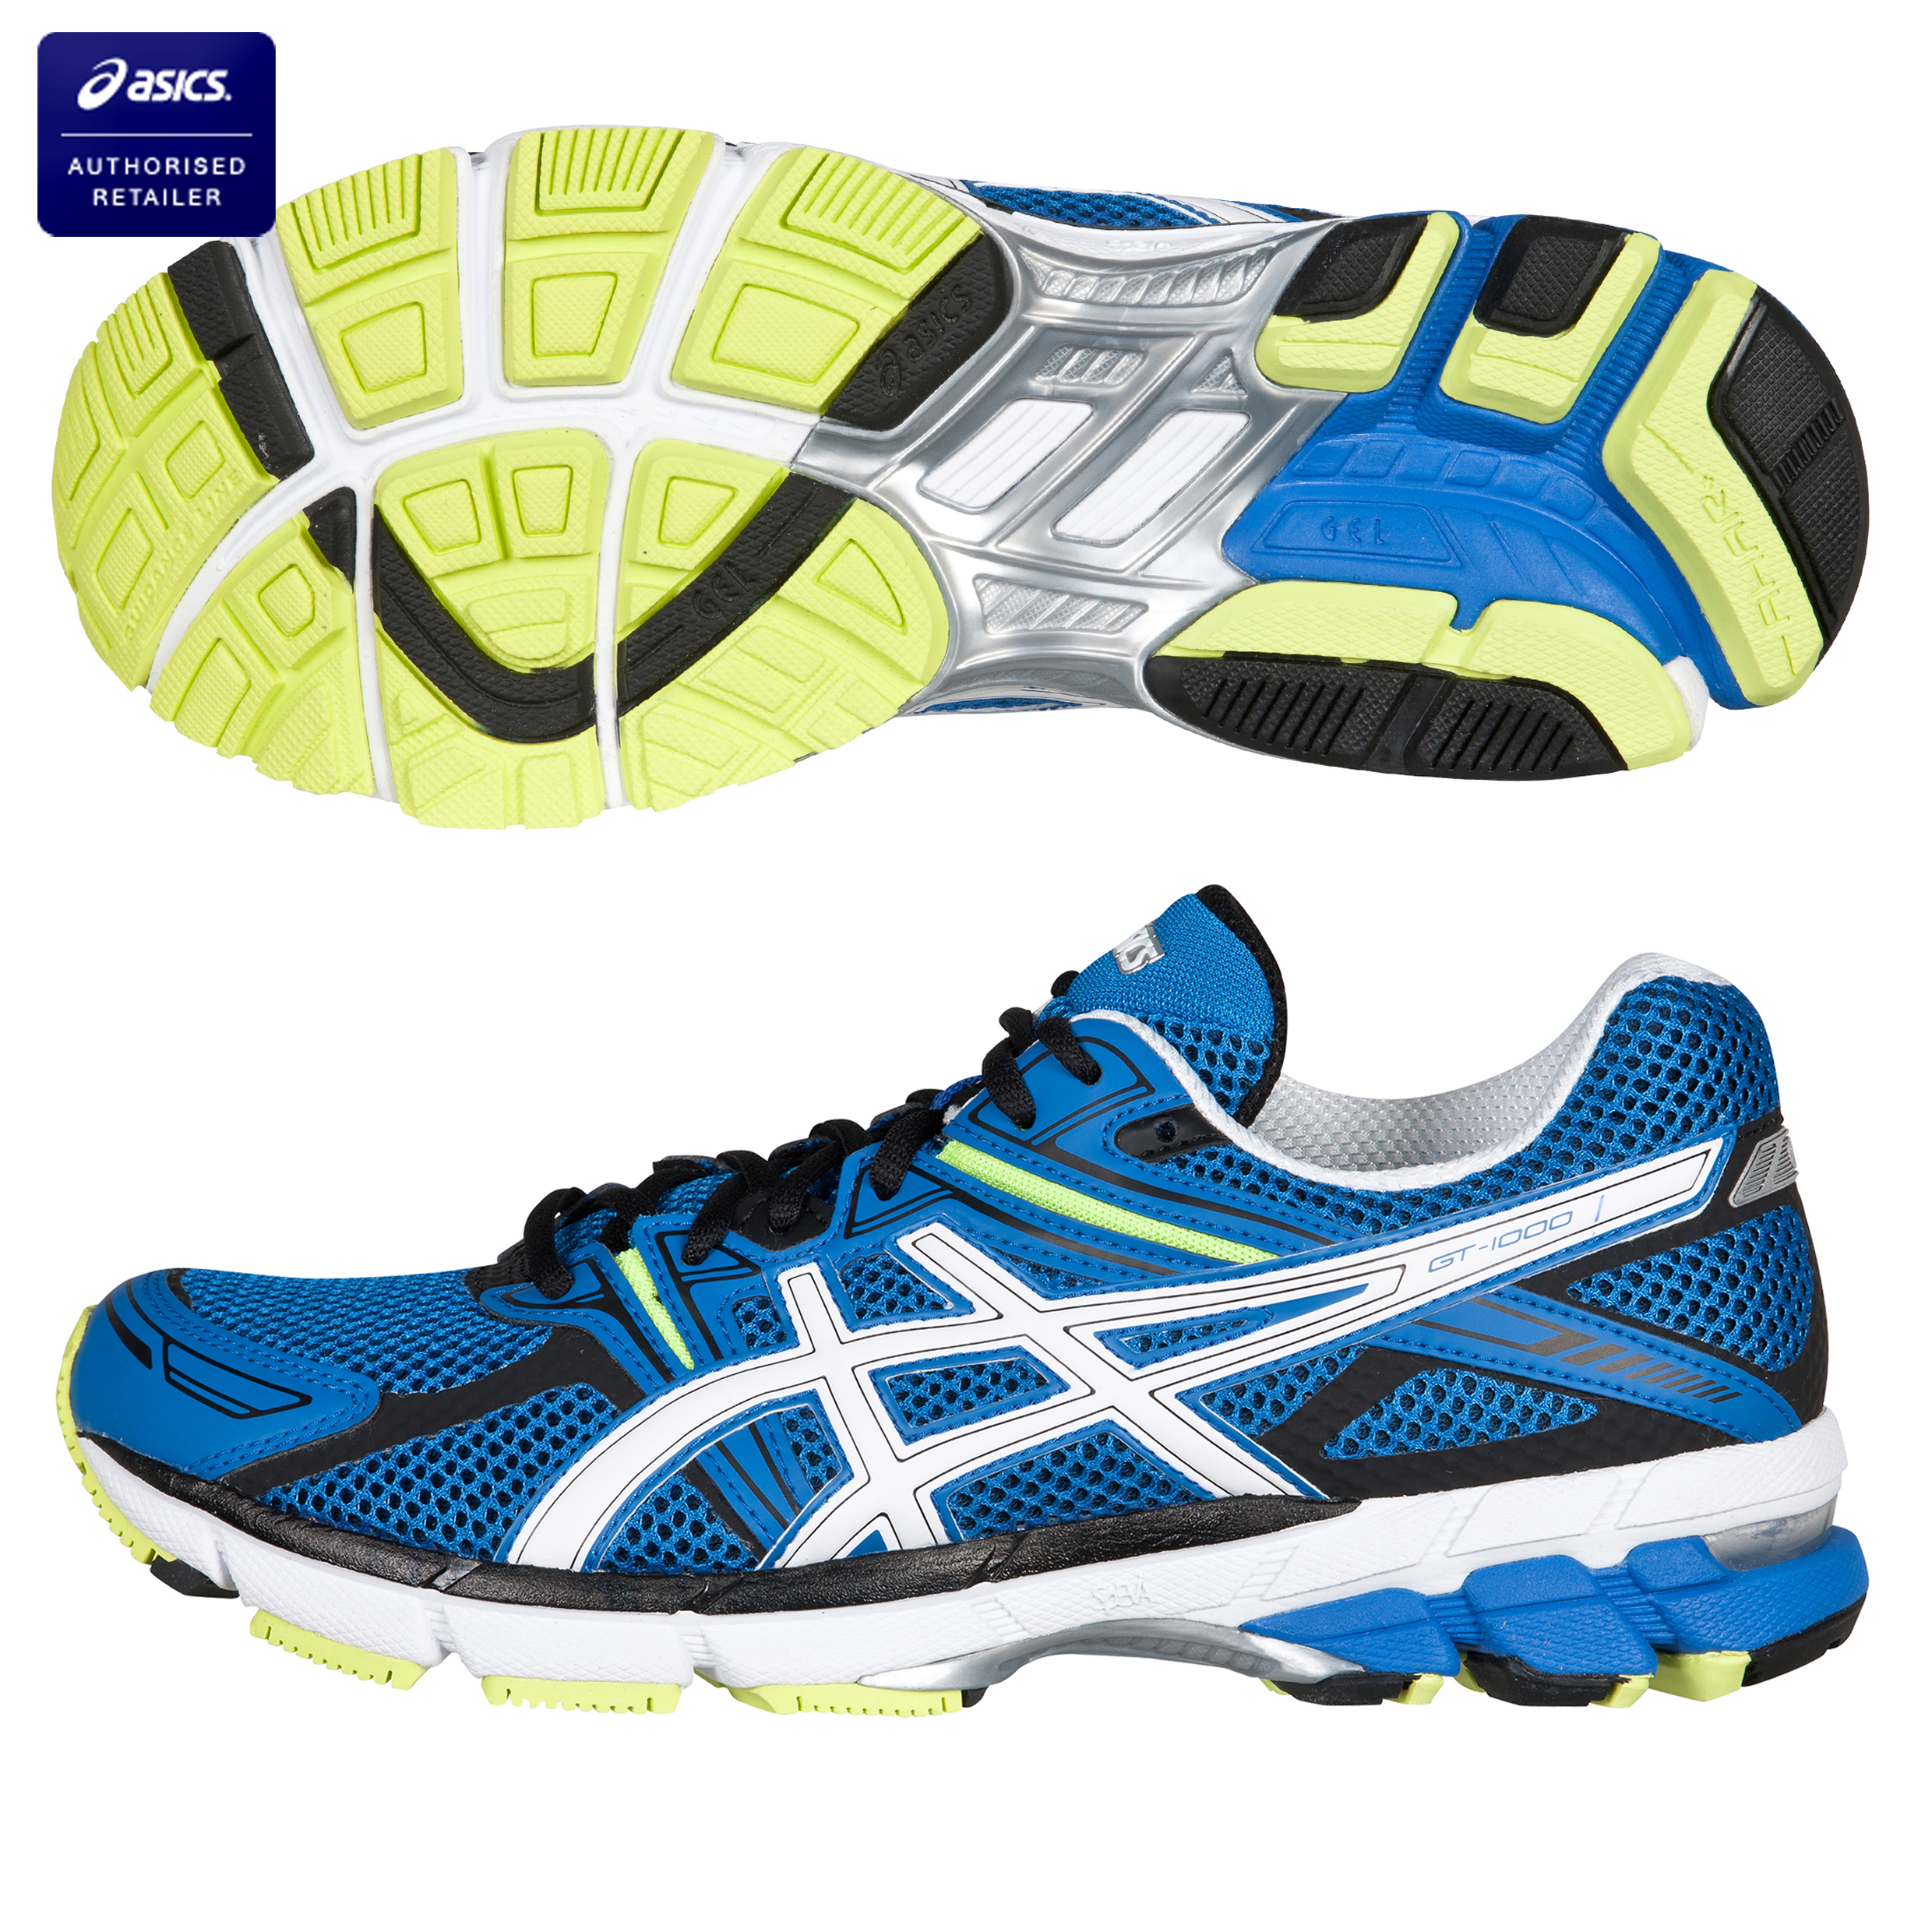 Asics GT 1000 Stability Trainers - Blue/White/Neon Yellow